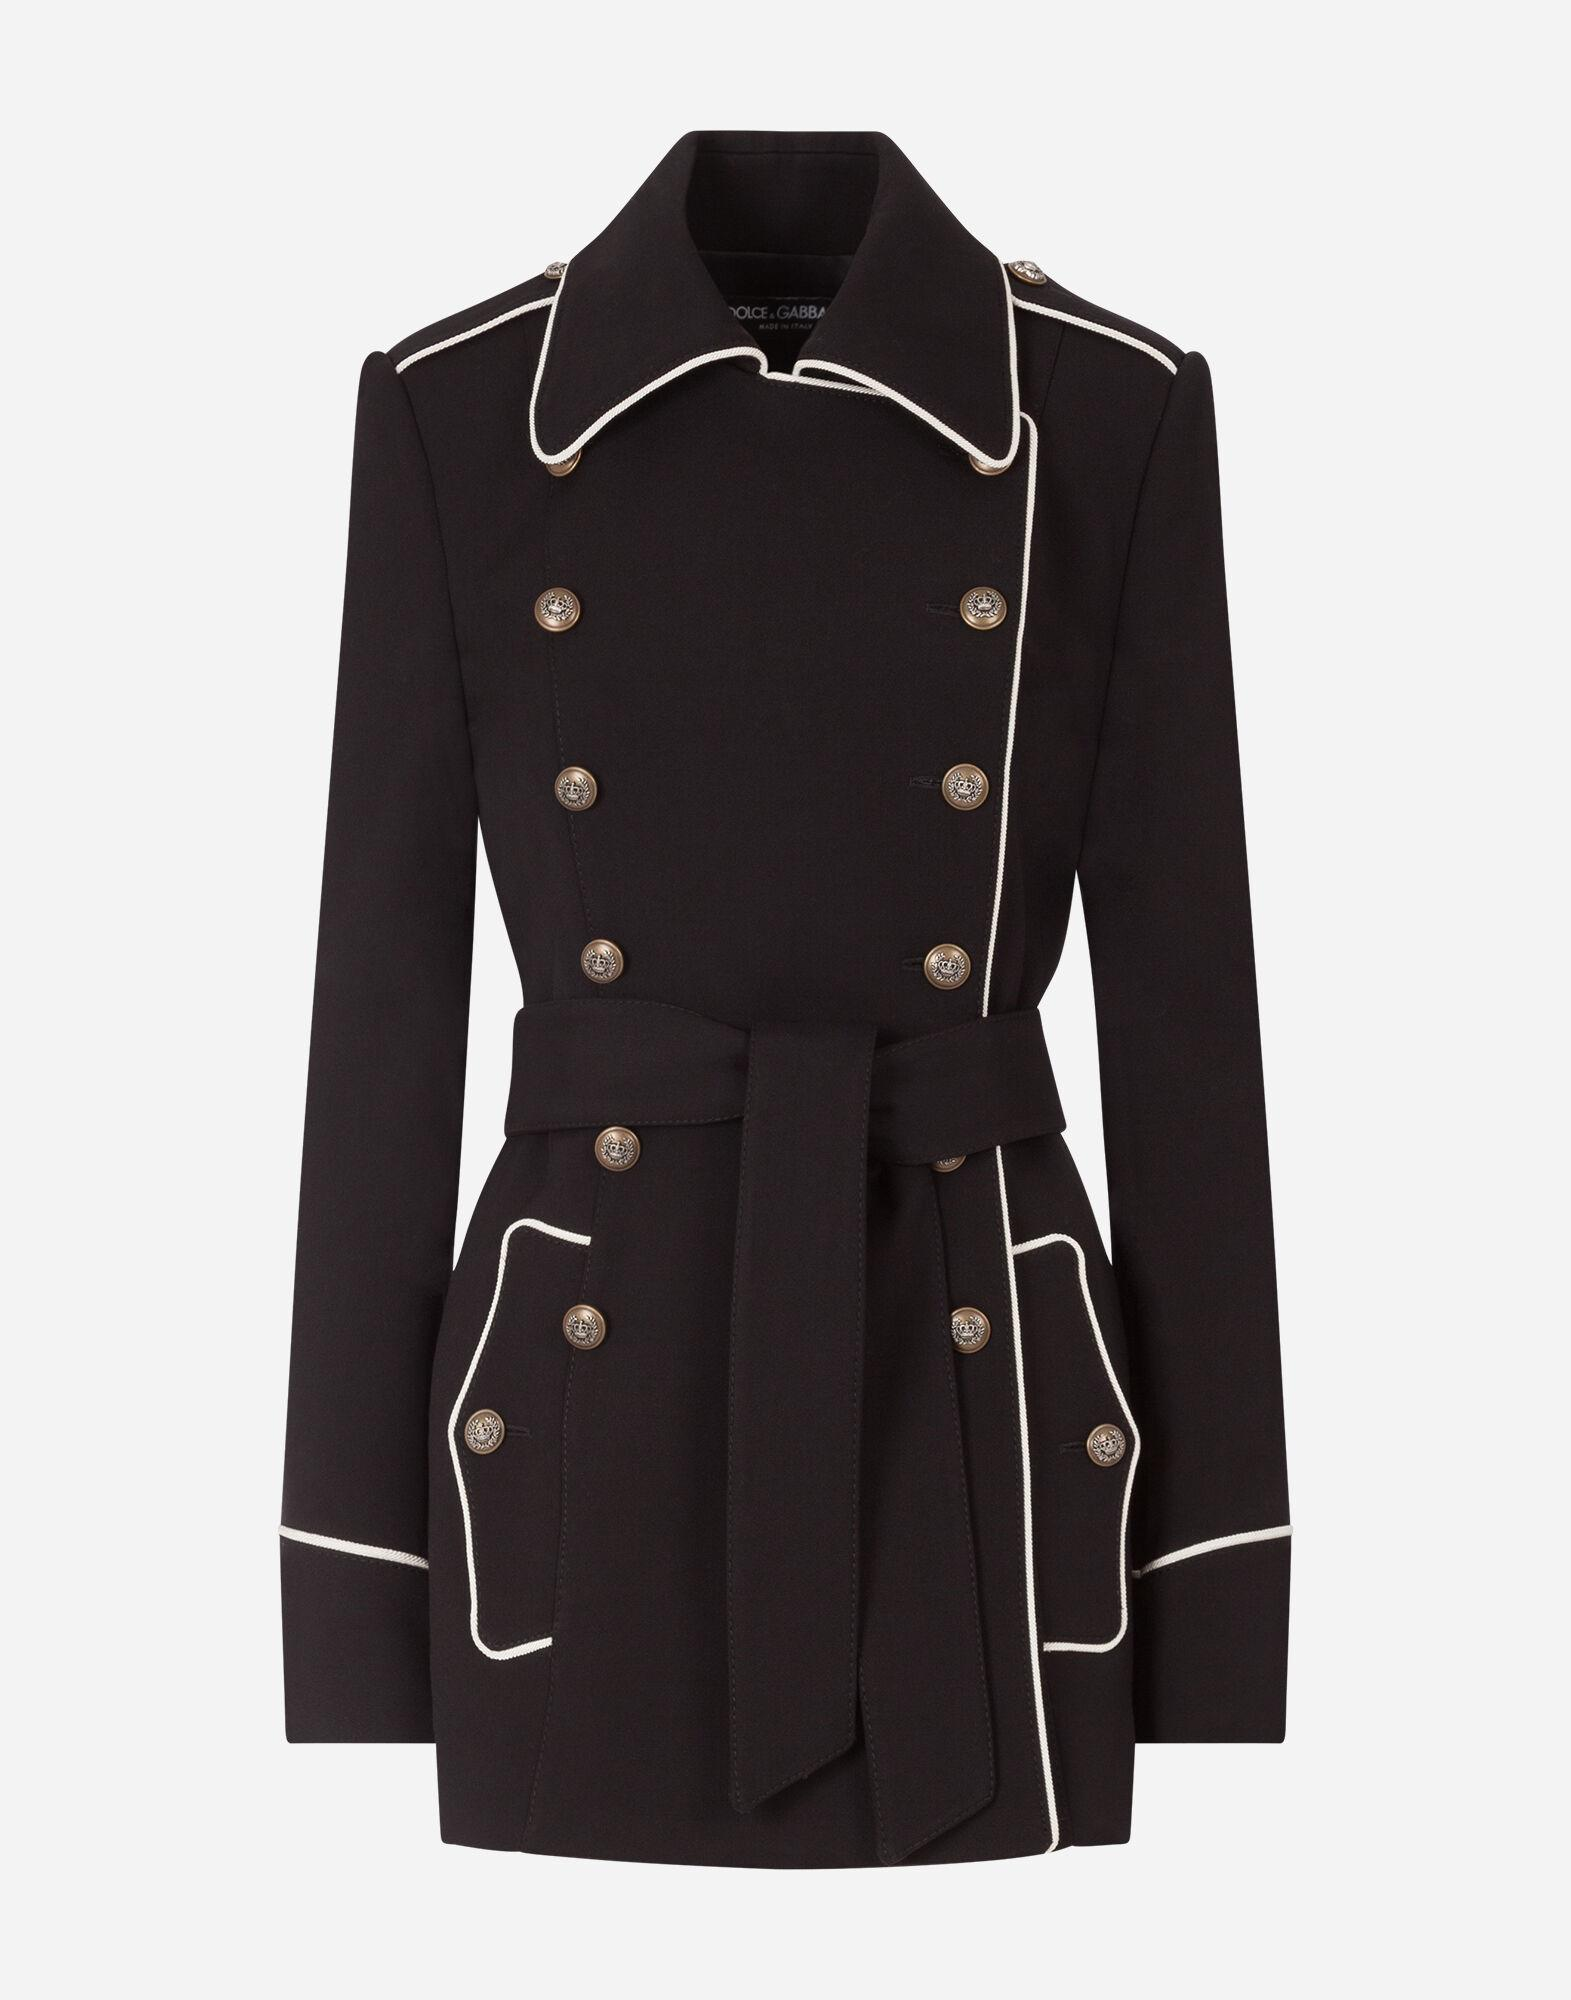 Woolen peacoat with decorative buttons 3